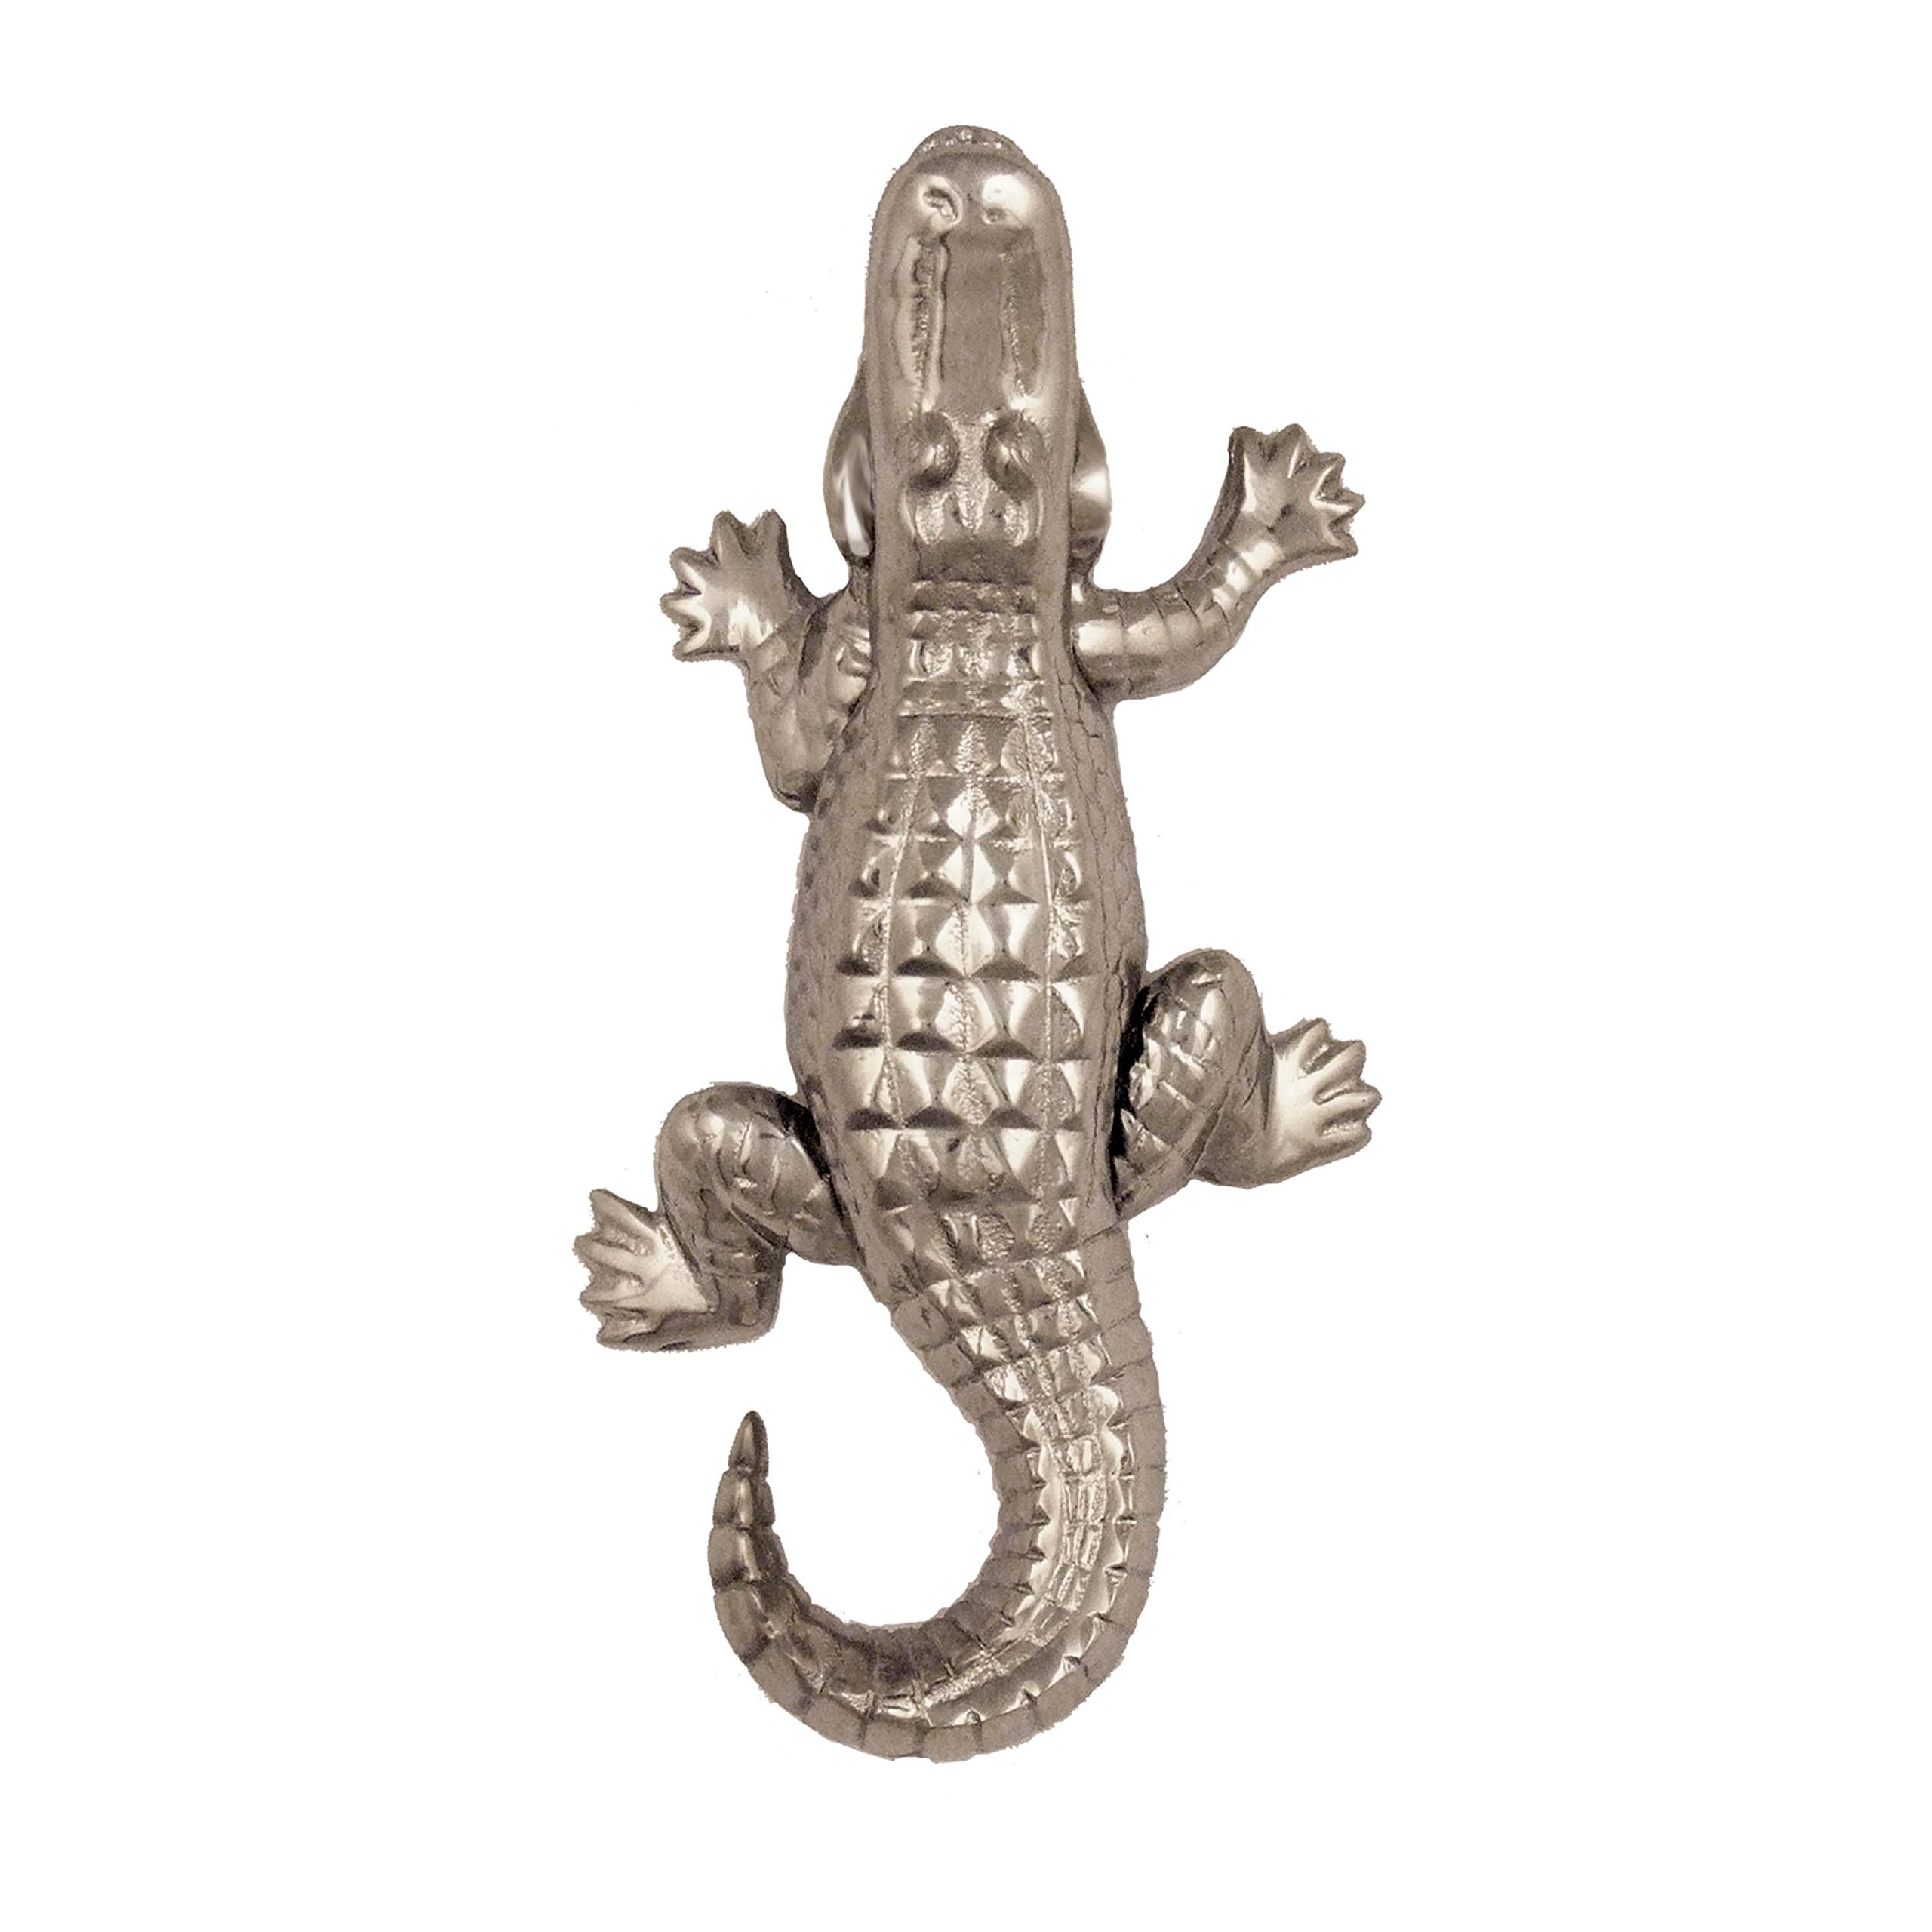 Alligator Door Knocker - Nickel Silver (Standard Size)